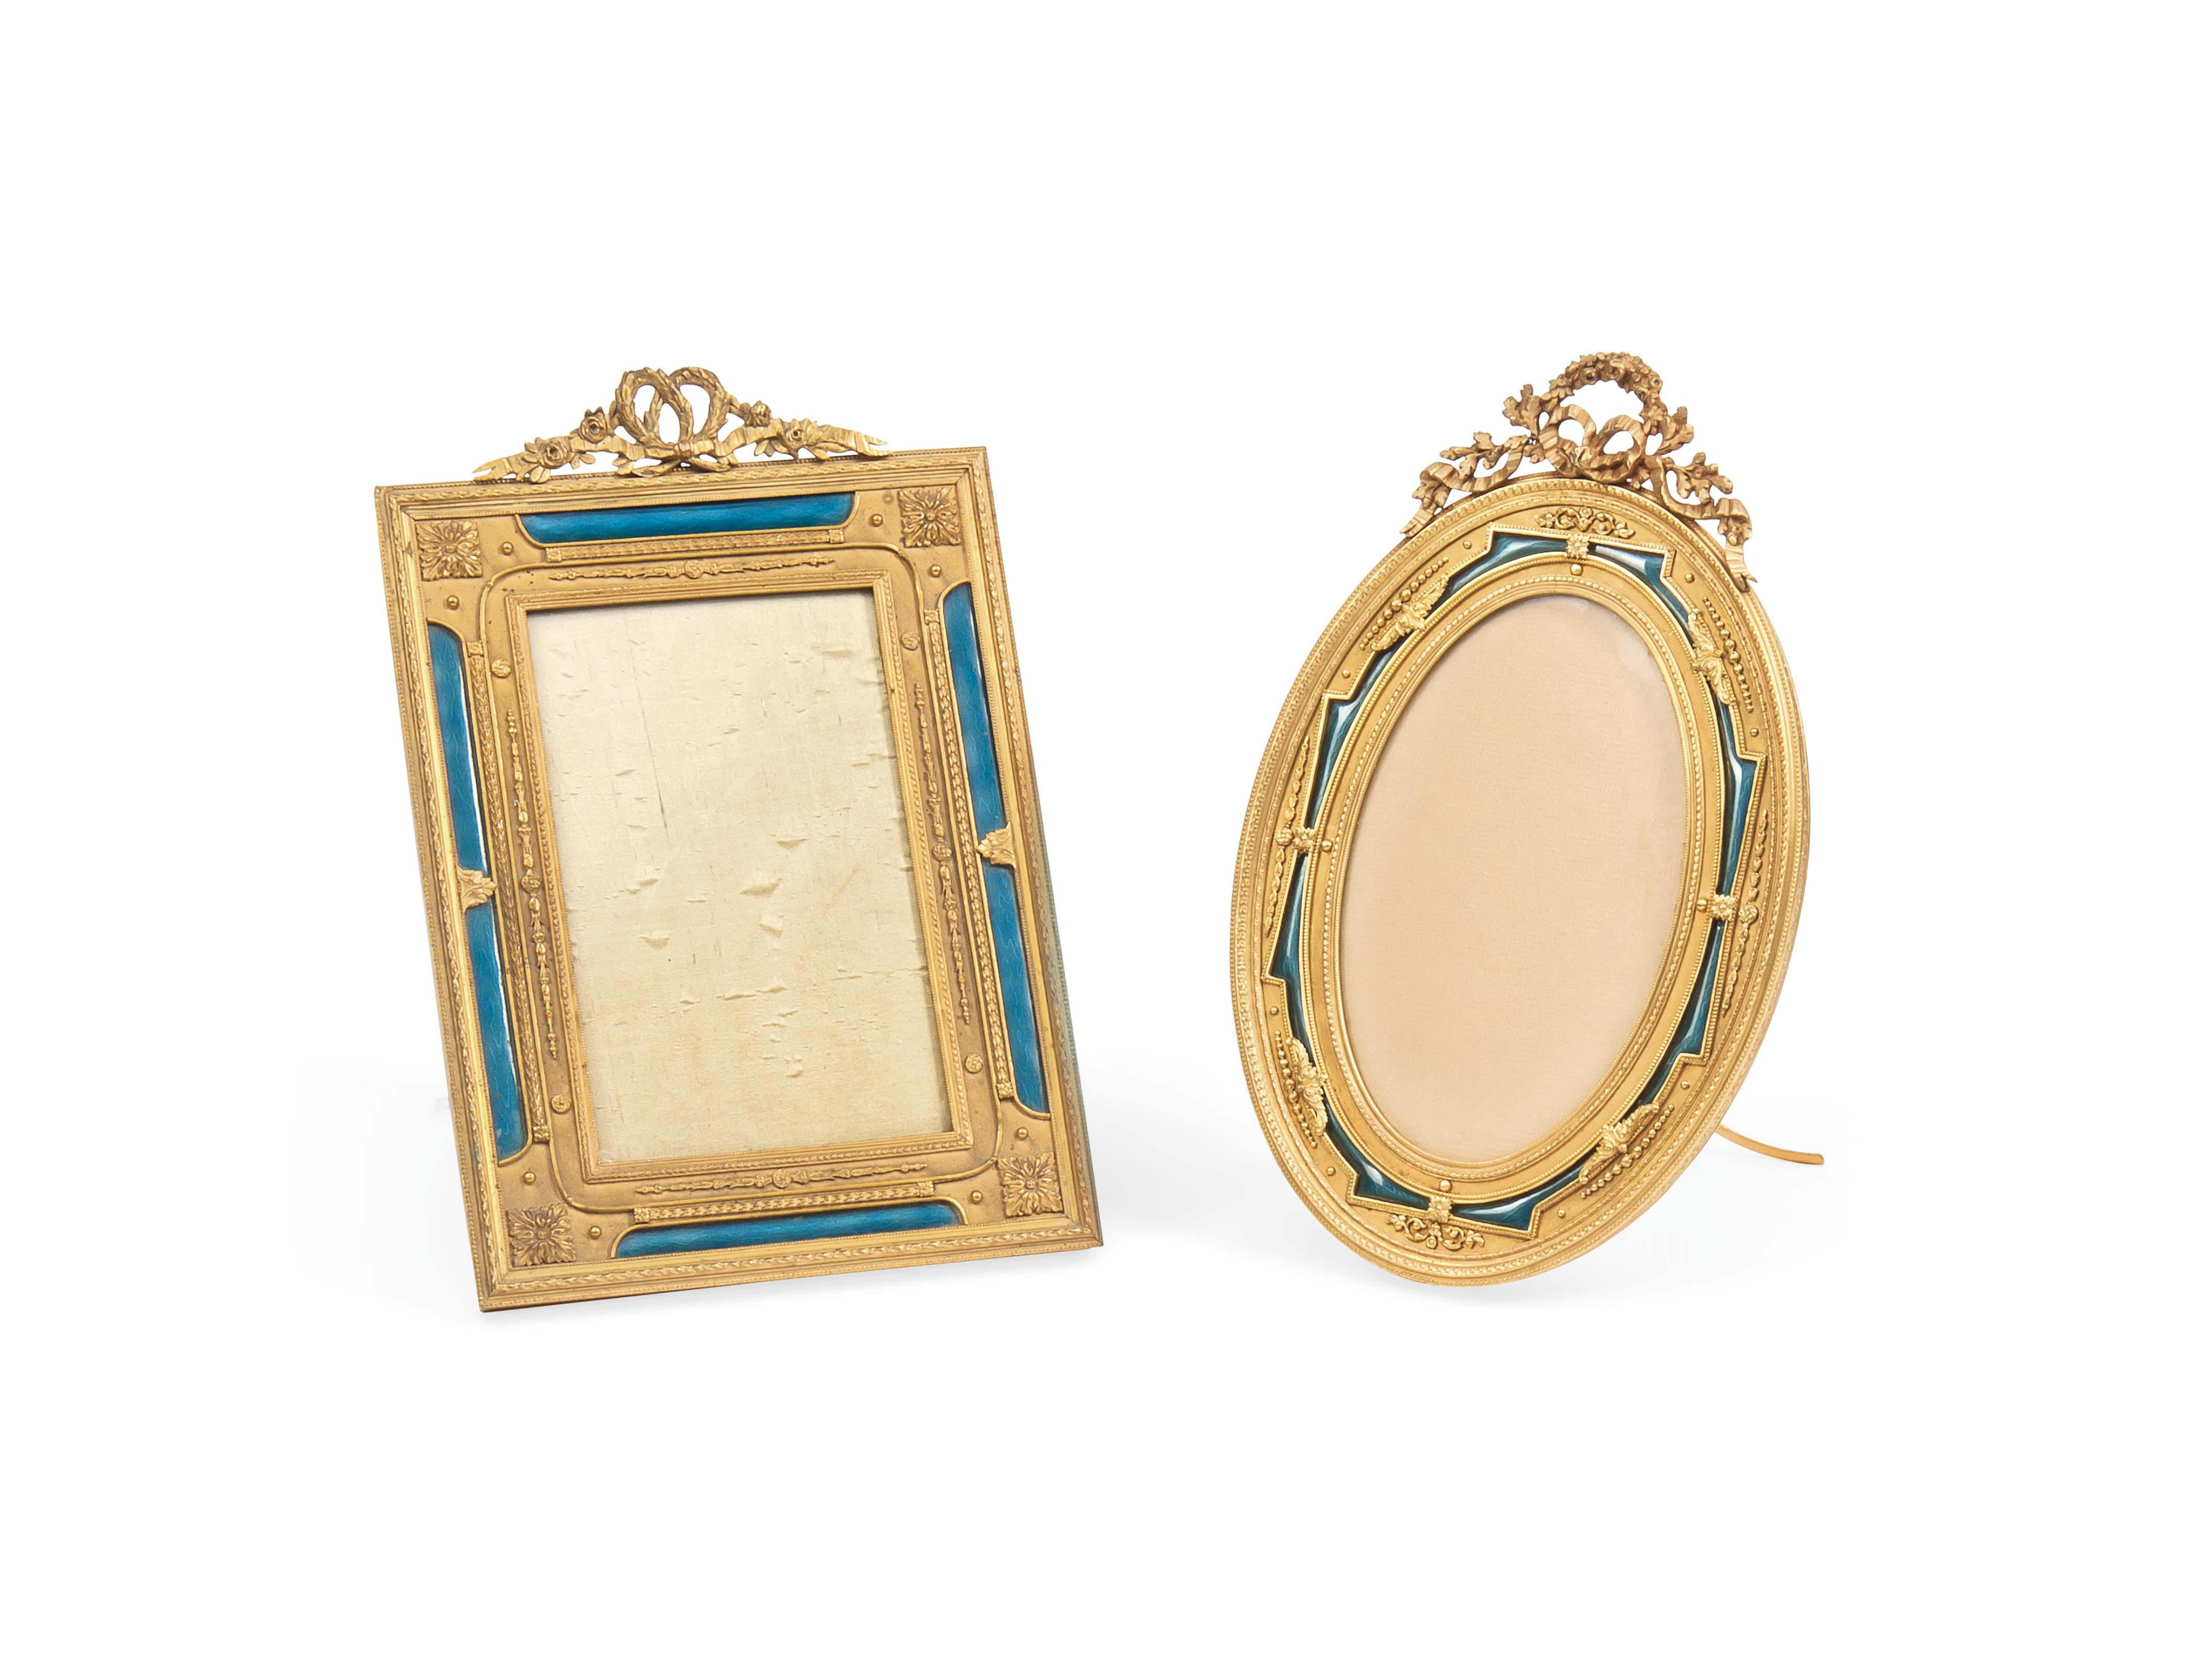 TWO FRENCH GILT BRONZE AND ENAMEL PHOTOGRAPH FRAMES